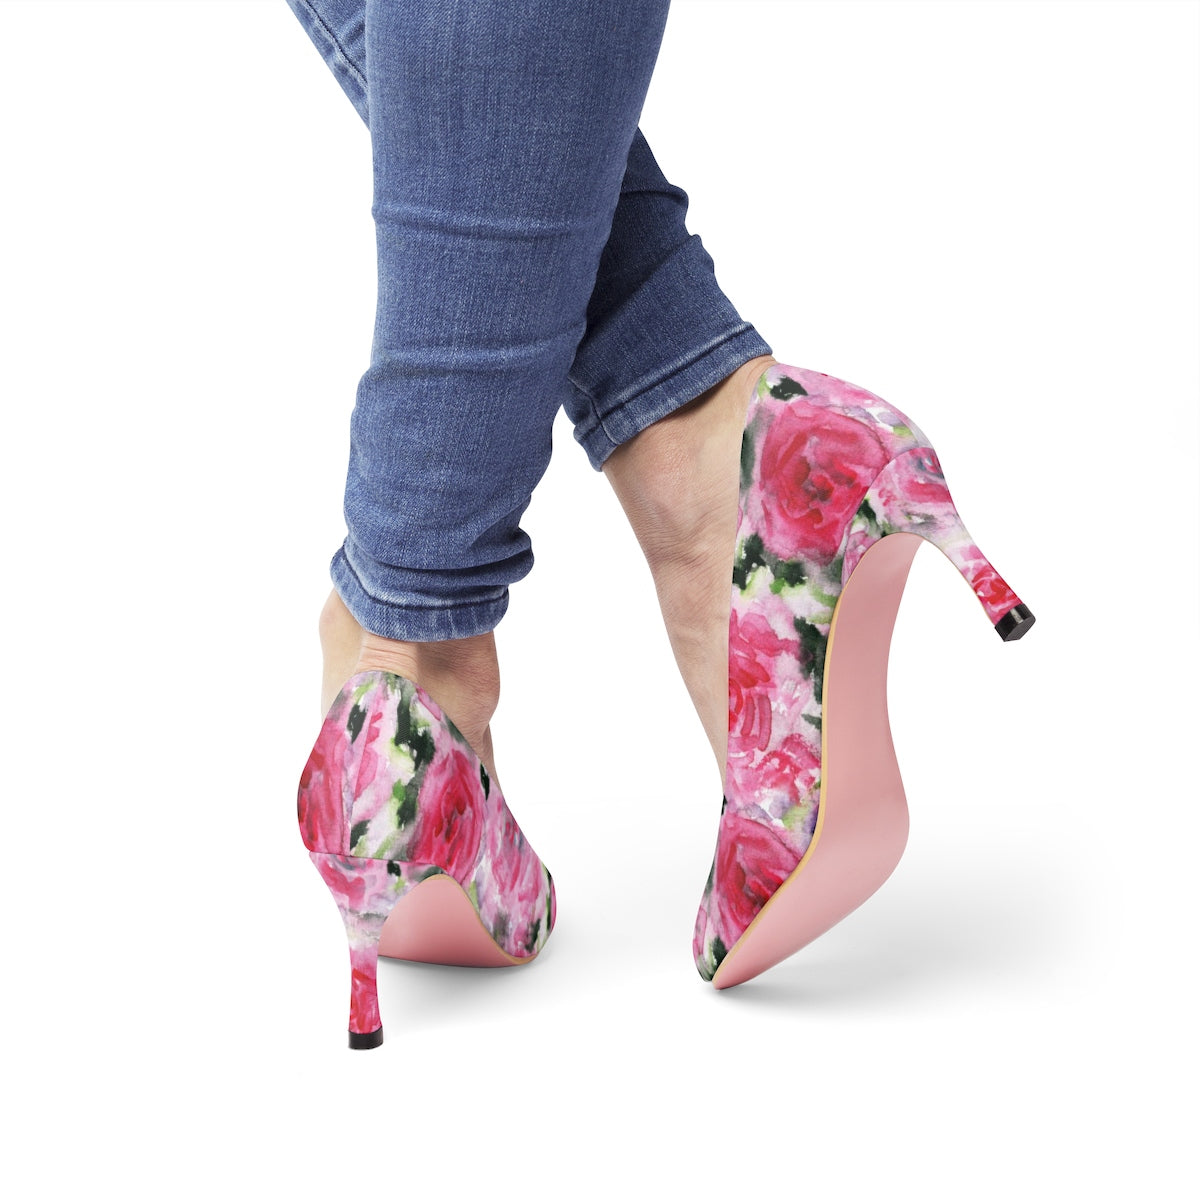 "Pink Princess Rose Designer Japanese Floral Print Women's 3"" High Heels Pumps Shoes-3 inch Heels-US 7-Heidi Kimura Art LLC Pink Floral Heels, Pink Princess Rose Designer Japanese Floral Print Women's 3"" High Heels Pumps Shoes (US Size: 5-11)"